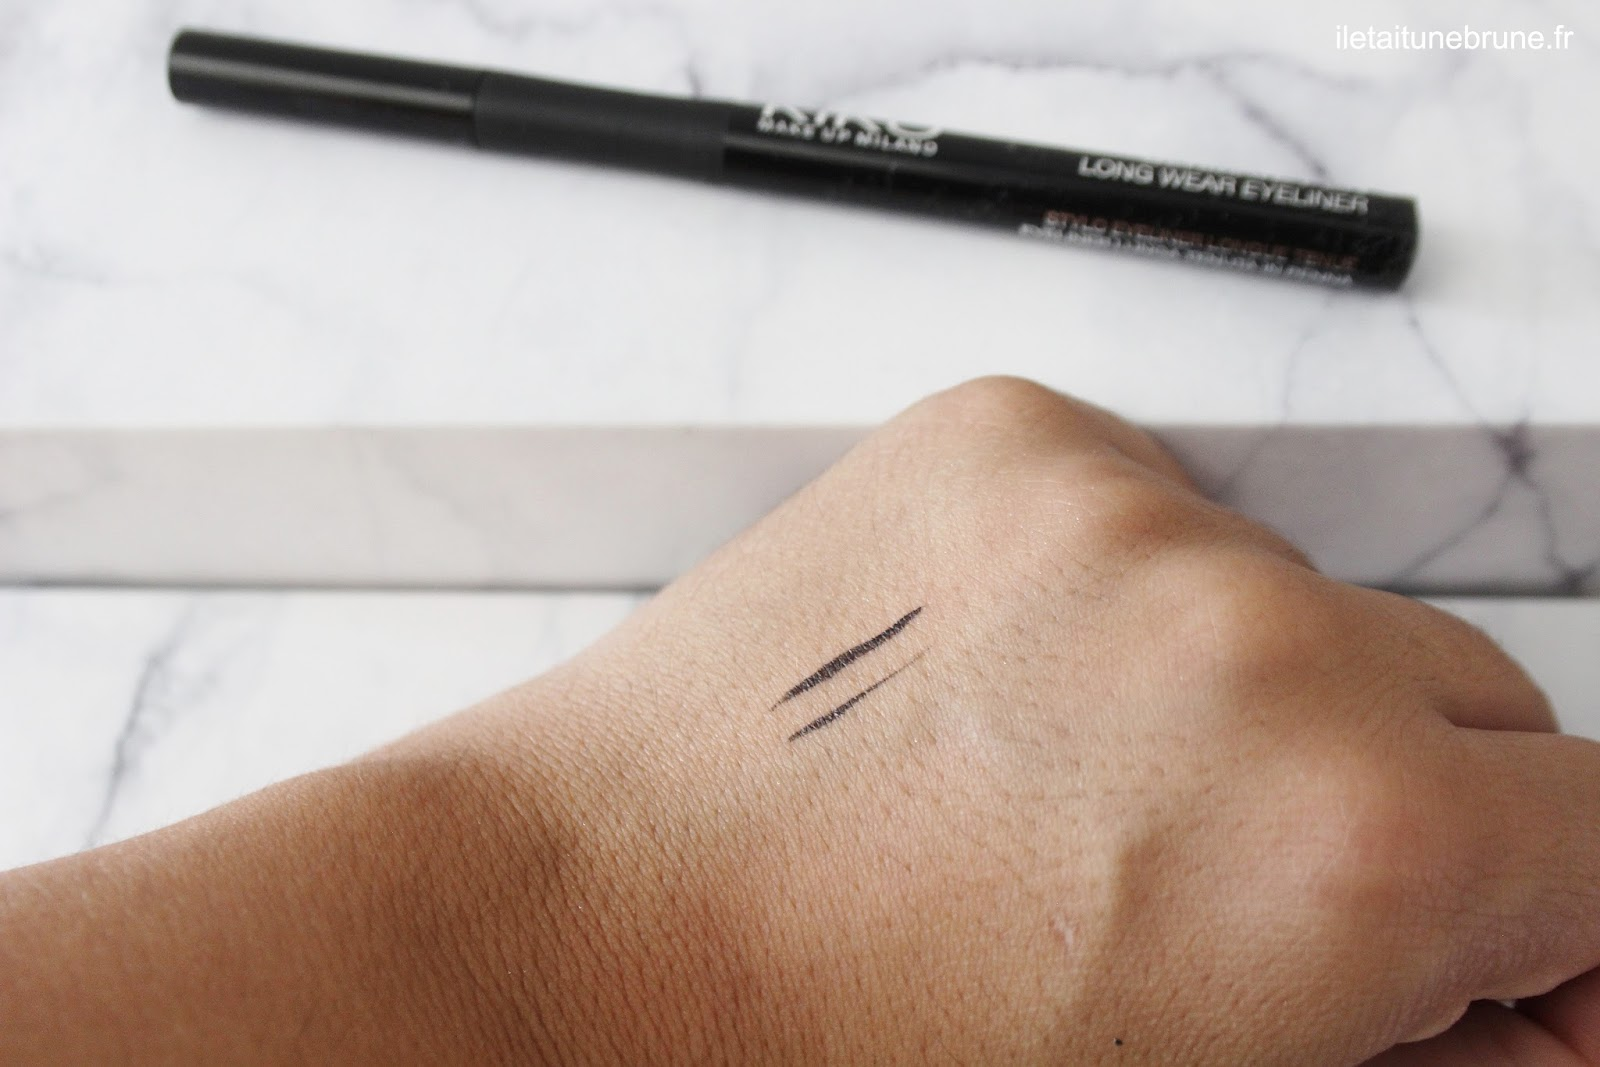 swatch de l'ultimate pen long wear eyeliner noir de kiko